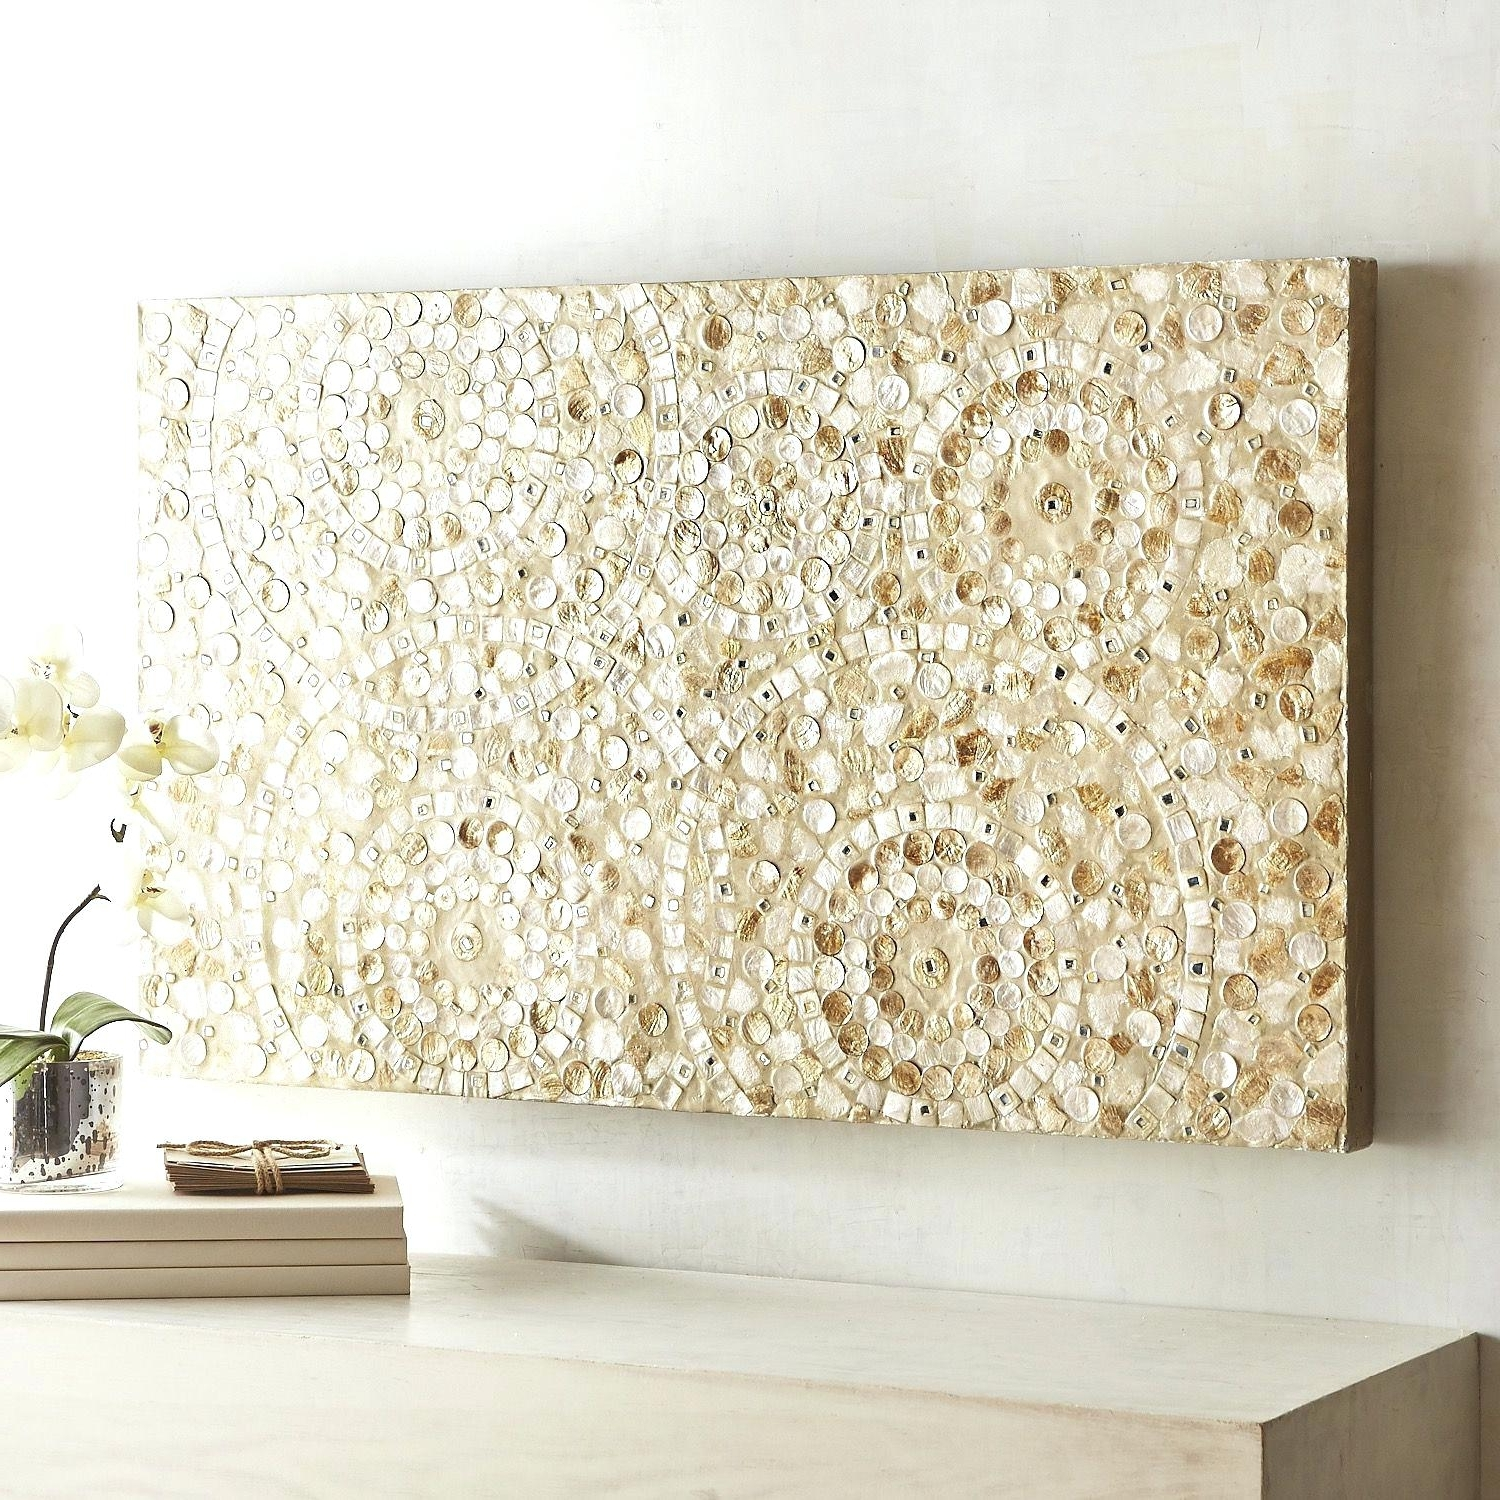 Enjoyable Design Ideas Capiz Wall Art Com Shell Fish Bowl Flower Inside Well Liked West Elm Wall Art (View 18 of 20)